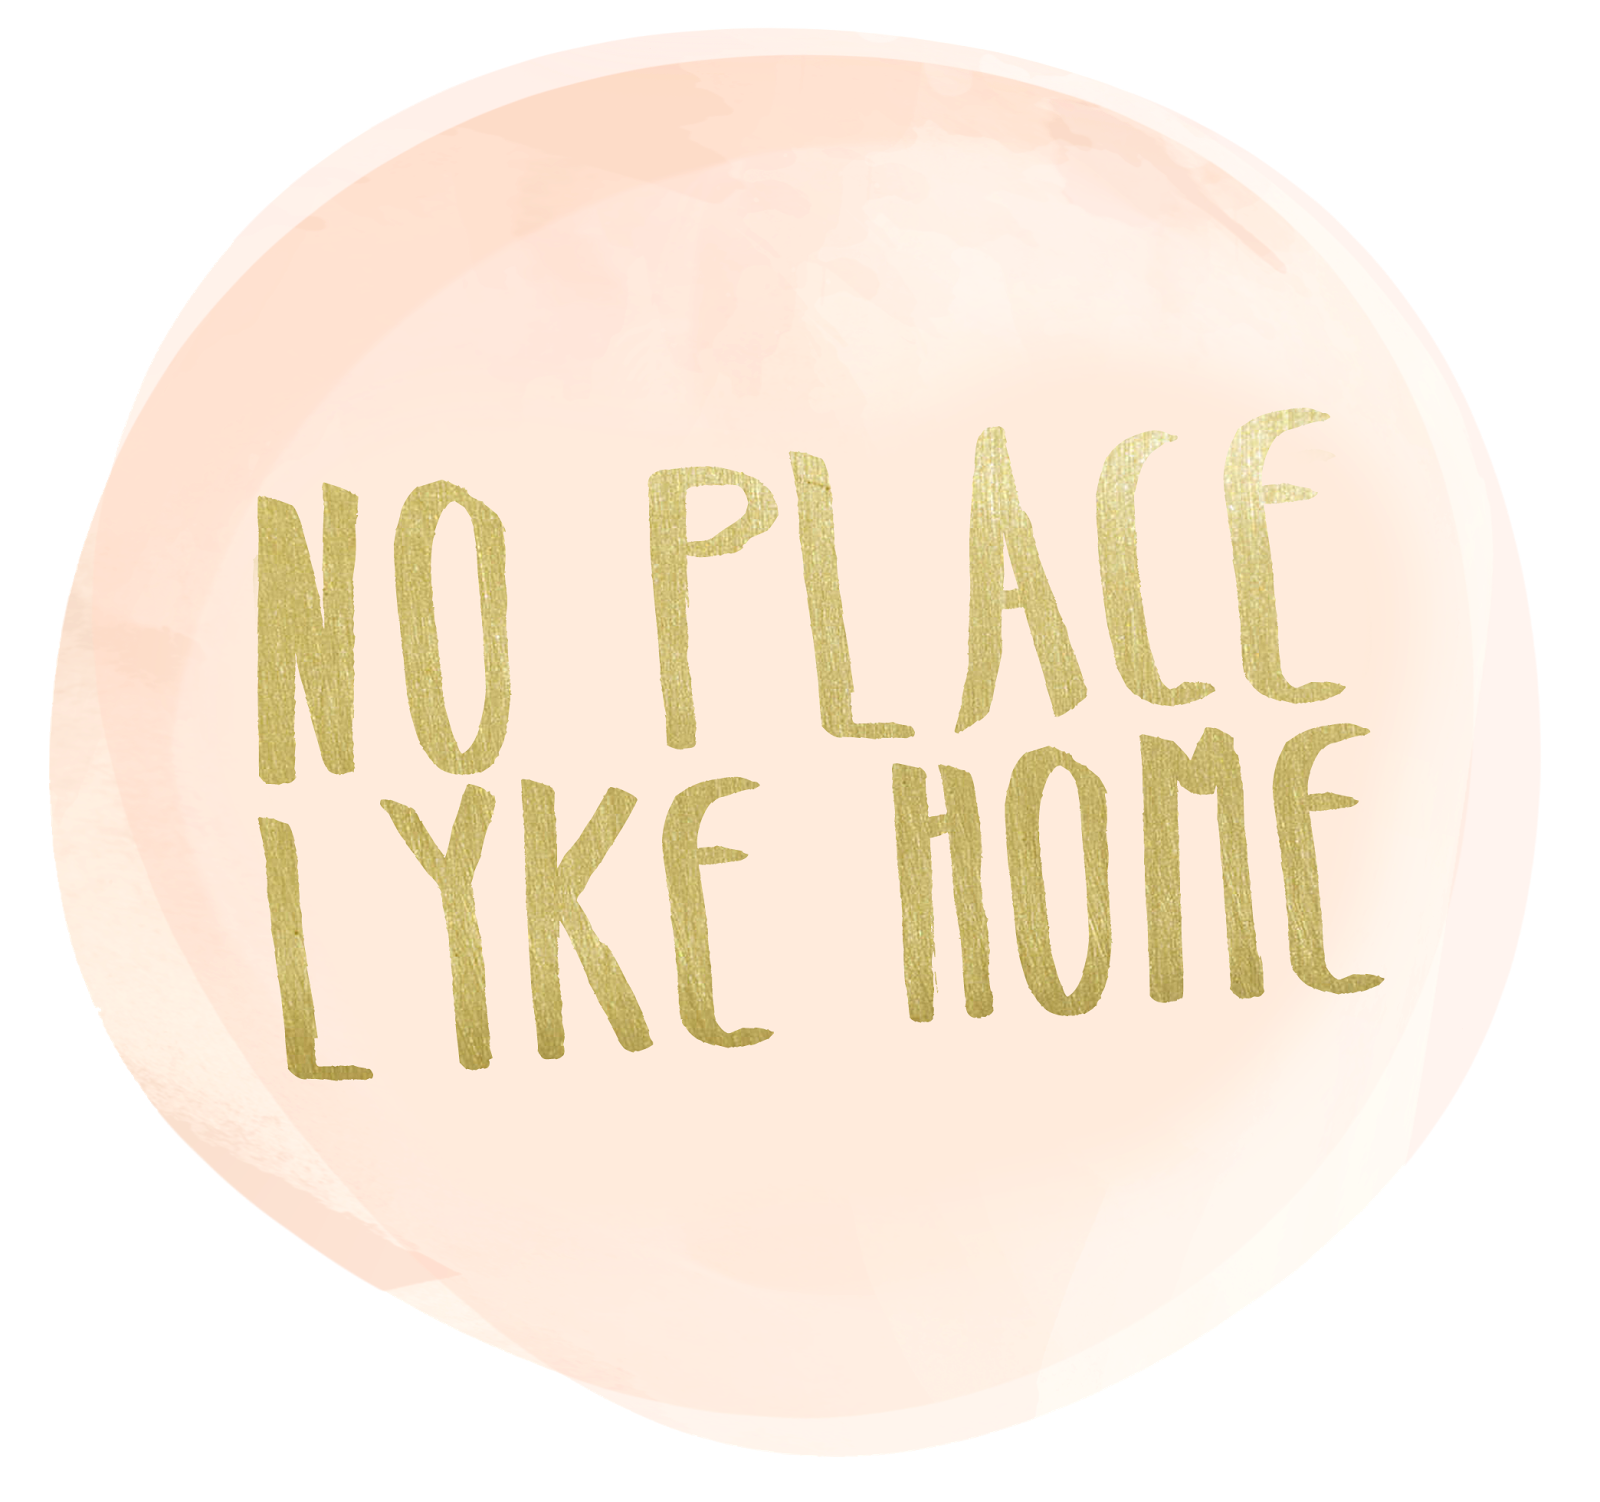 No Place Lyke Home